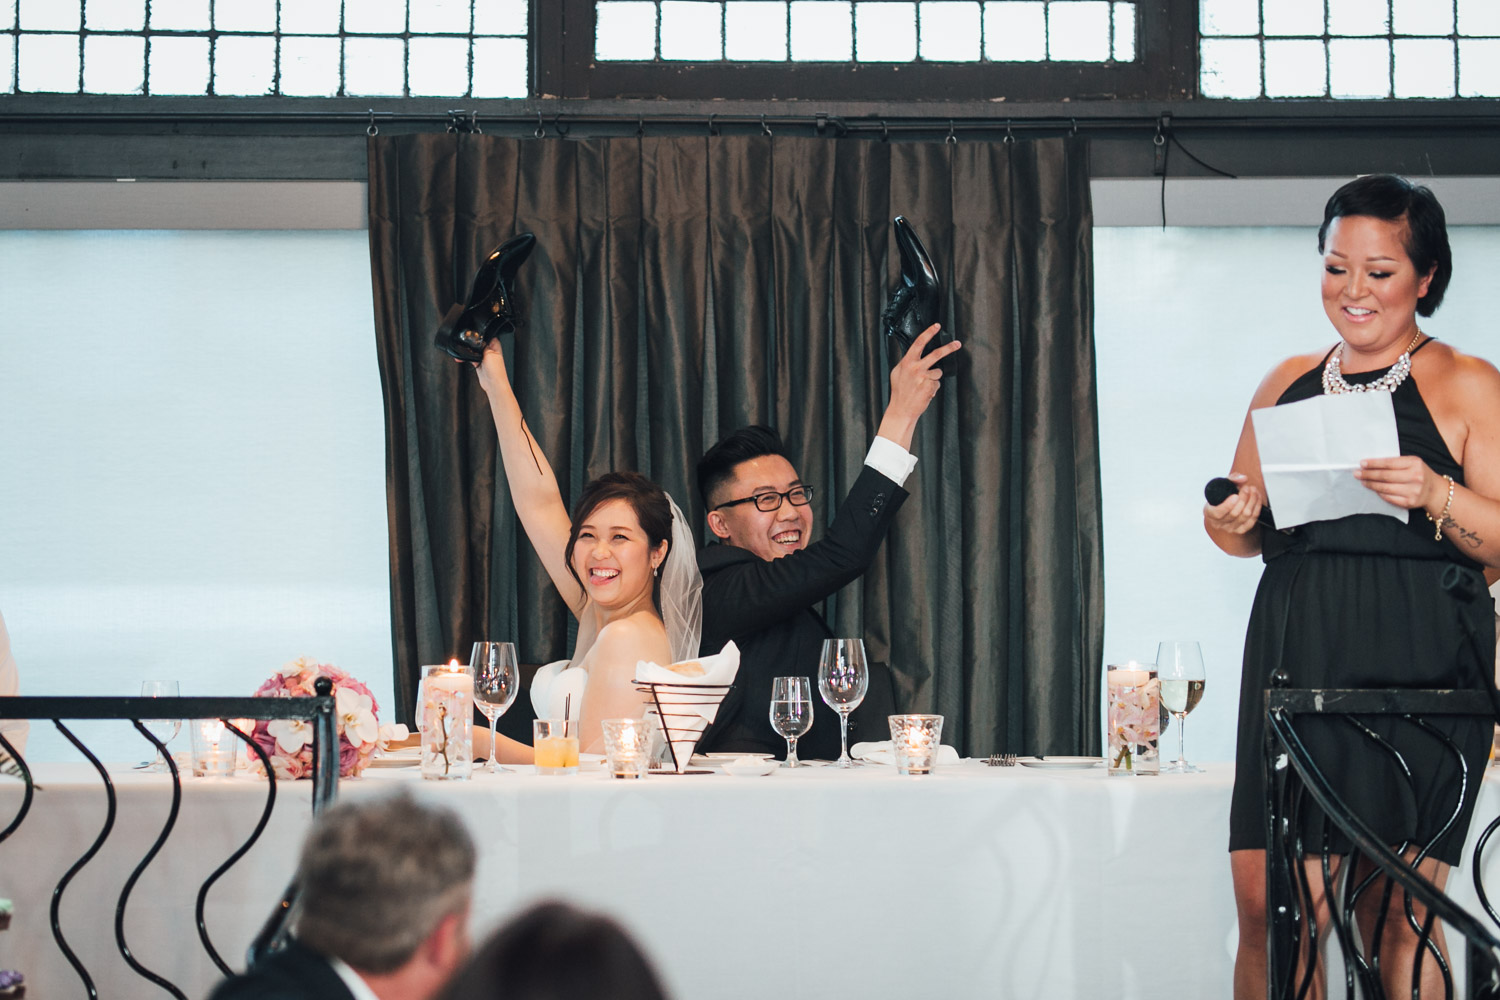 brix & mortar restaurant wedding photography in yaletown vancouver bc